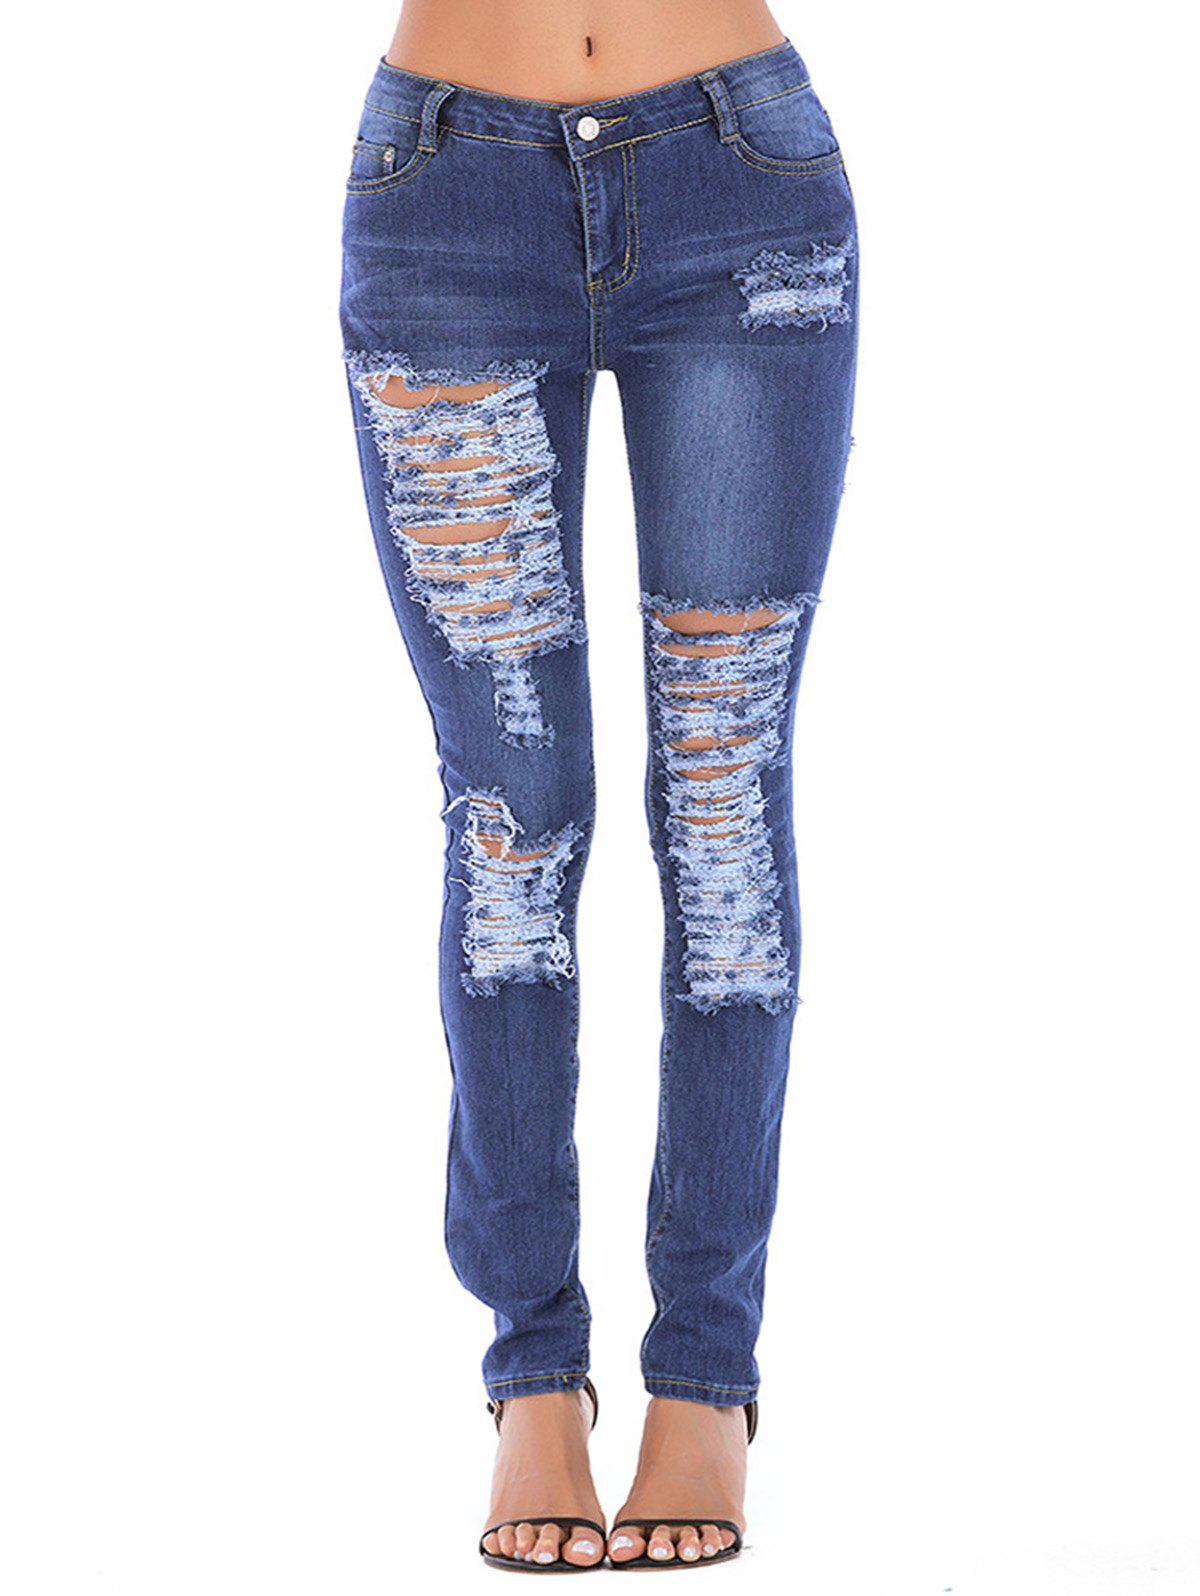 Chic Women Juniors Distressed Slim Fit Stretchy Skinny Jeans